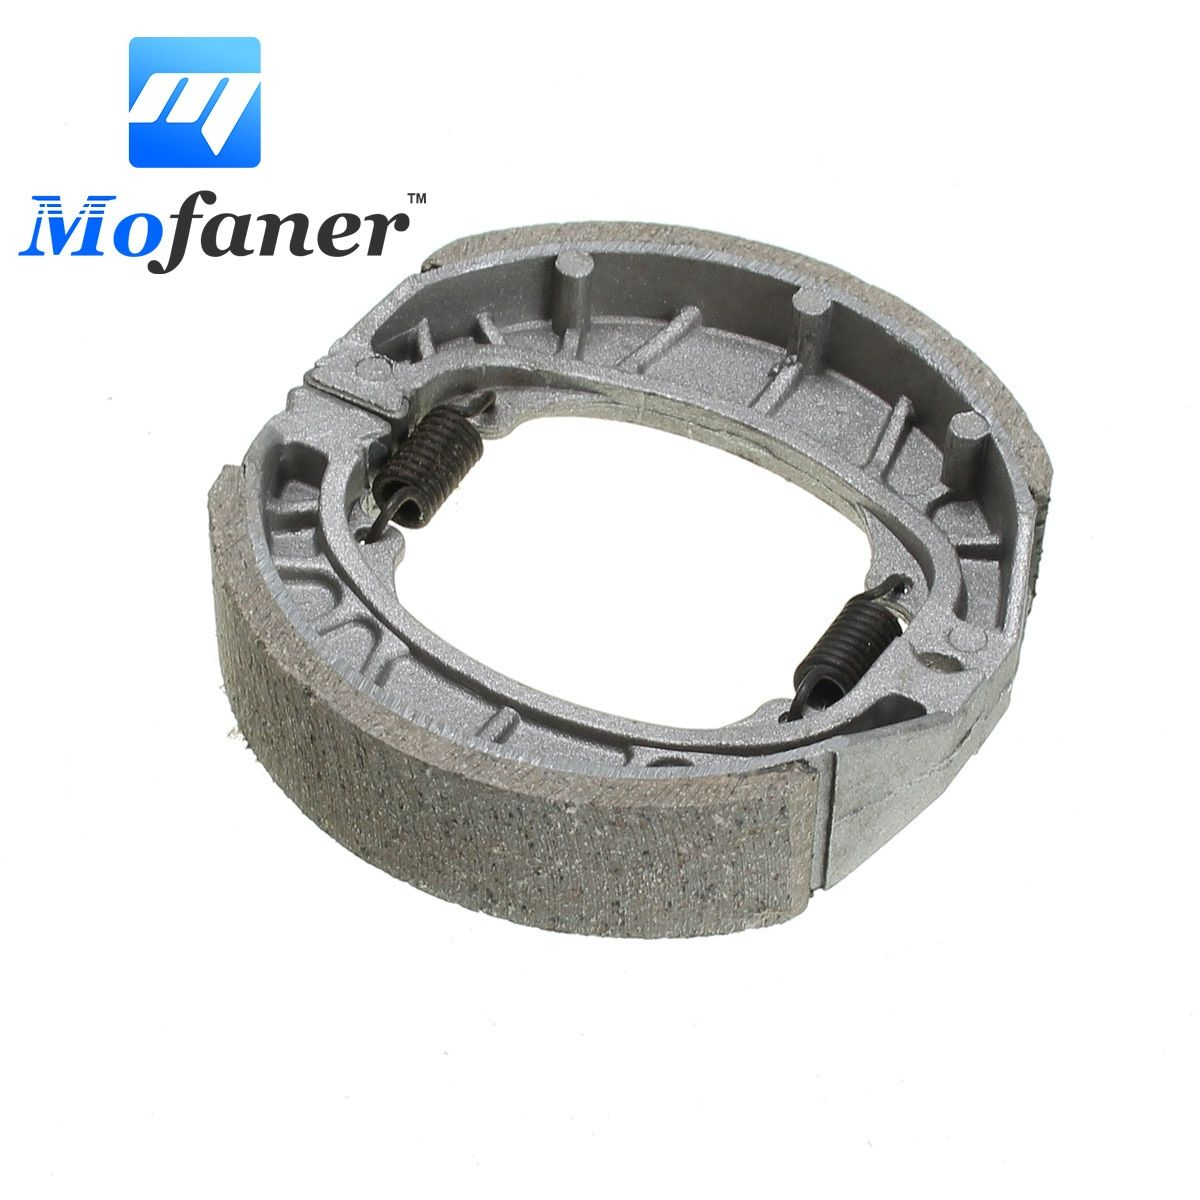 105mm Motorcycle Brake Pads Shoe Rear For GY6 50cc 110cc 125cc 150cc Scooter BRAK-0003 Sliver